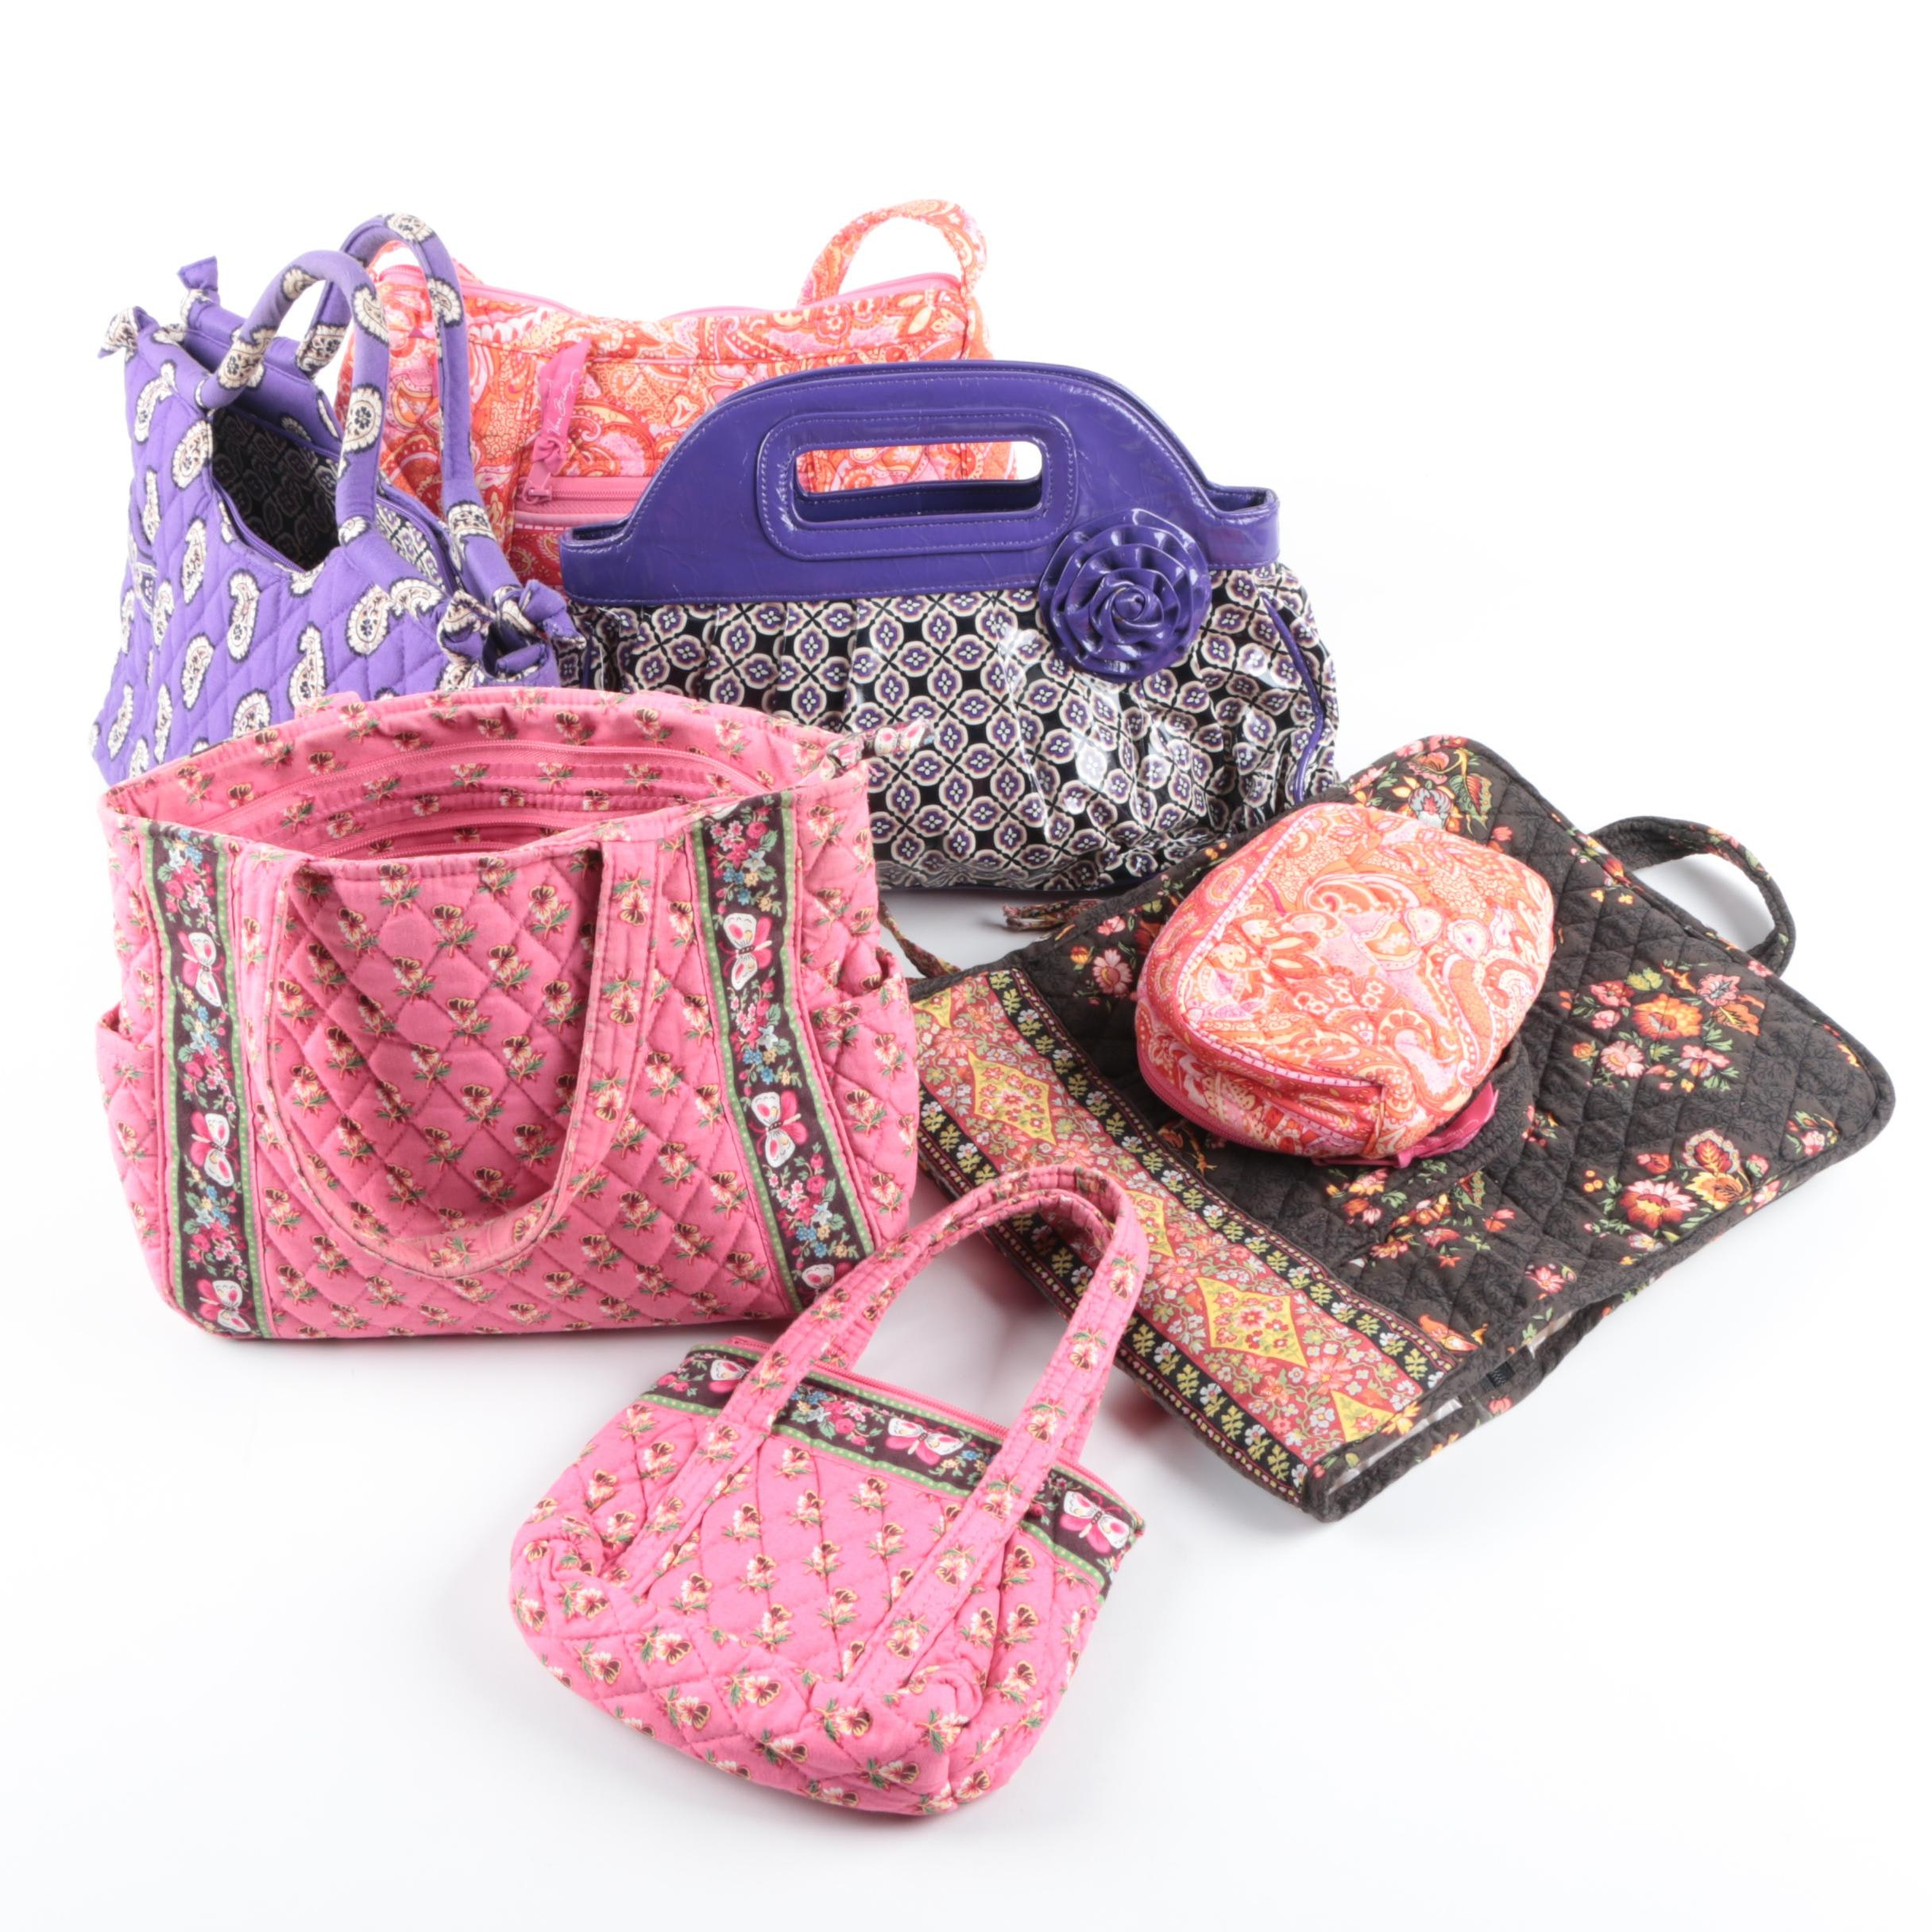 Vera Bradley Purses and Travel Bags